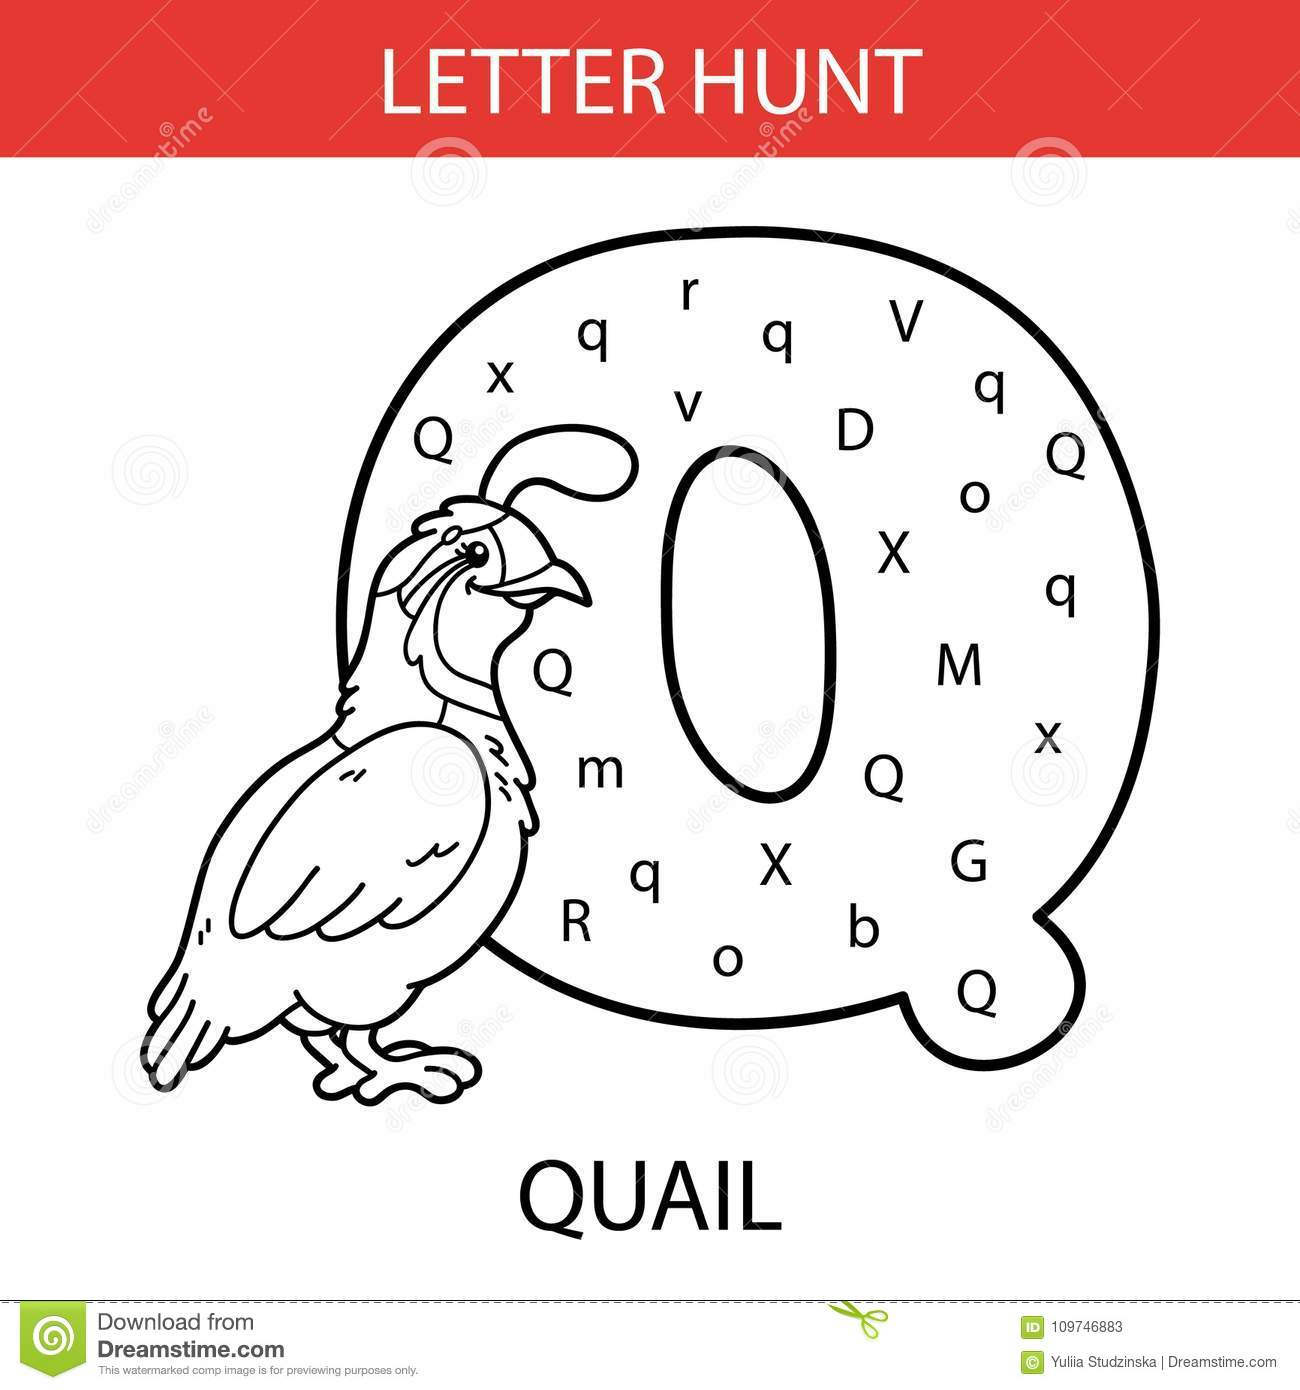 Animal Letter Hunt Quail Stock Vector Illustration Of